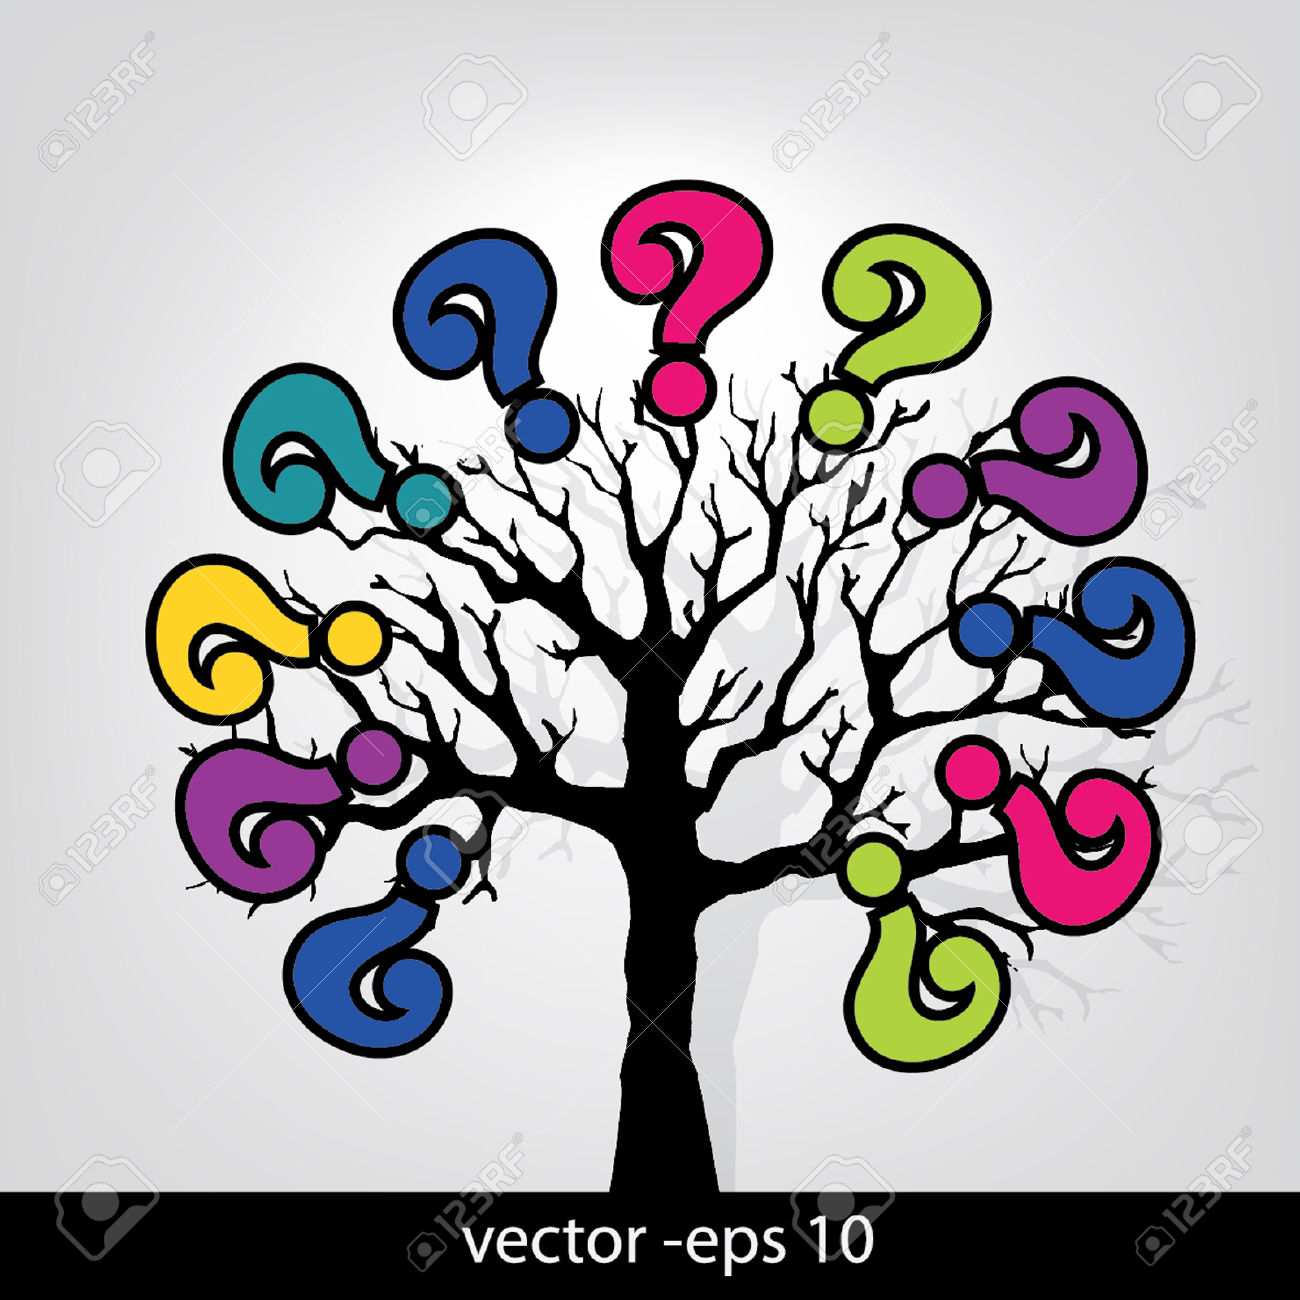 Tree Of Question Mark Royalty Free Cliparts, Vectors, And Stock.